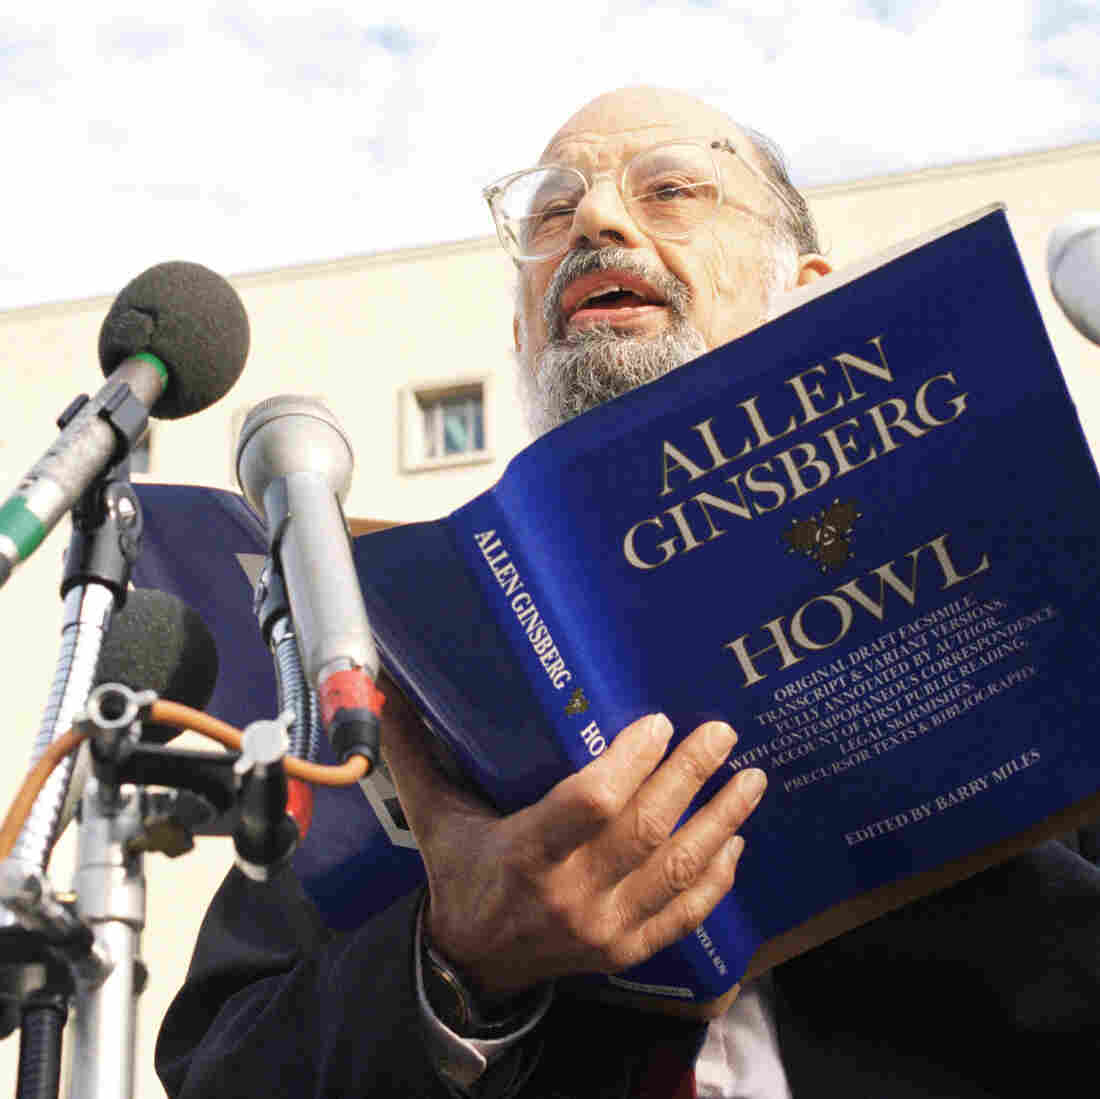 I Saw The All-Stars Of Our Generation Honor Allen Ginsberg's 'Howl'